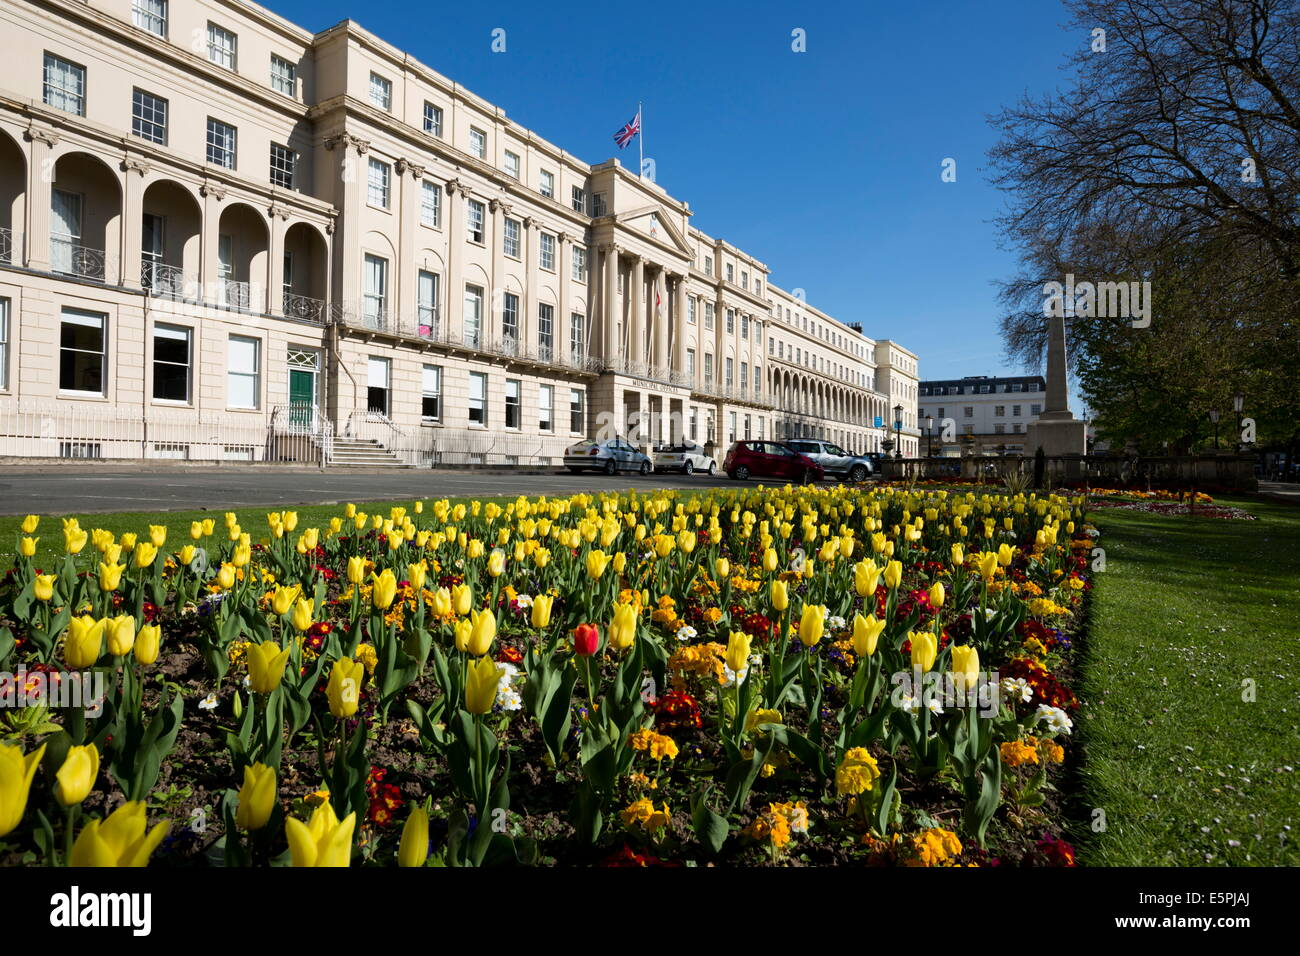 The Promenade and Municipal Offices, Cheltenham, Gloucestershire, England, United Kingdom, Europe - Stock Image